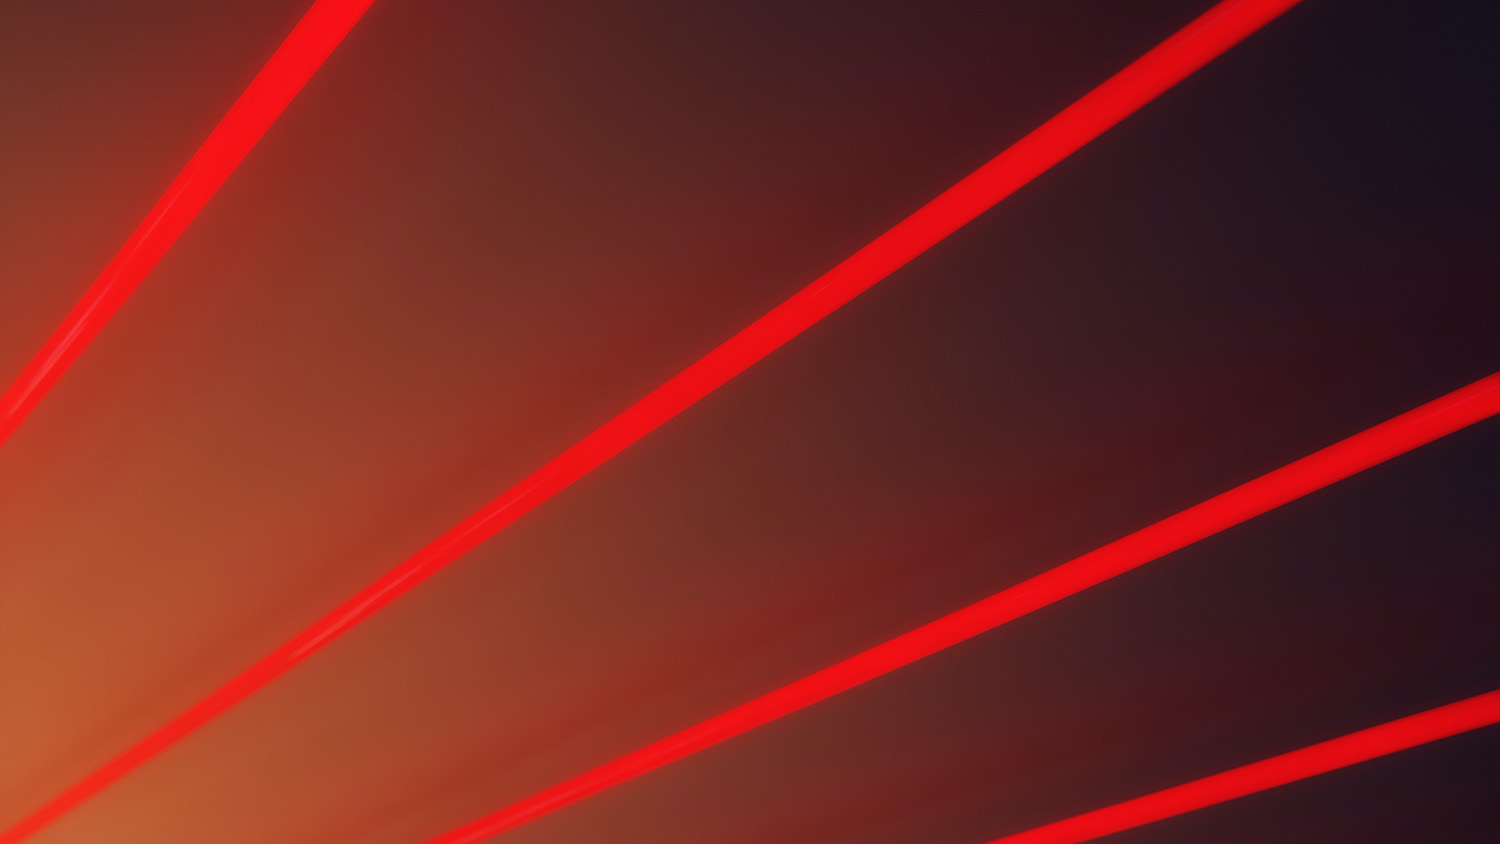 red laser beams